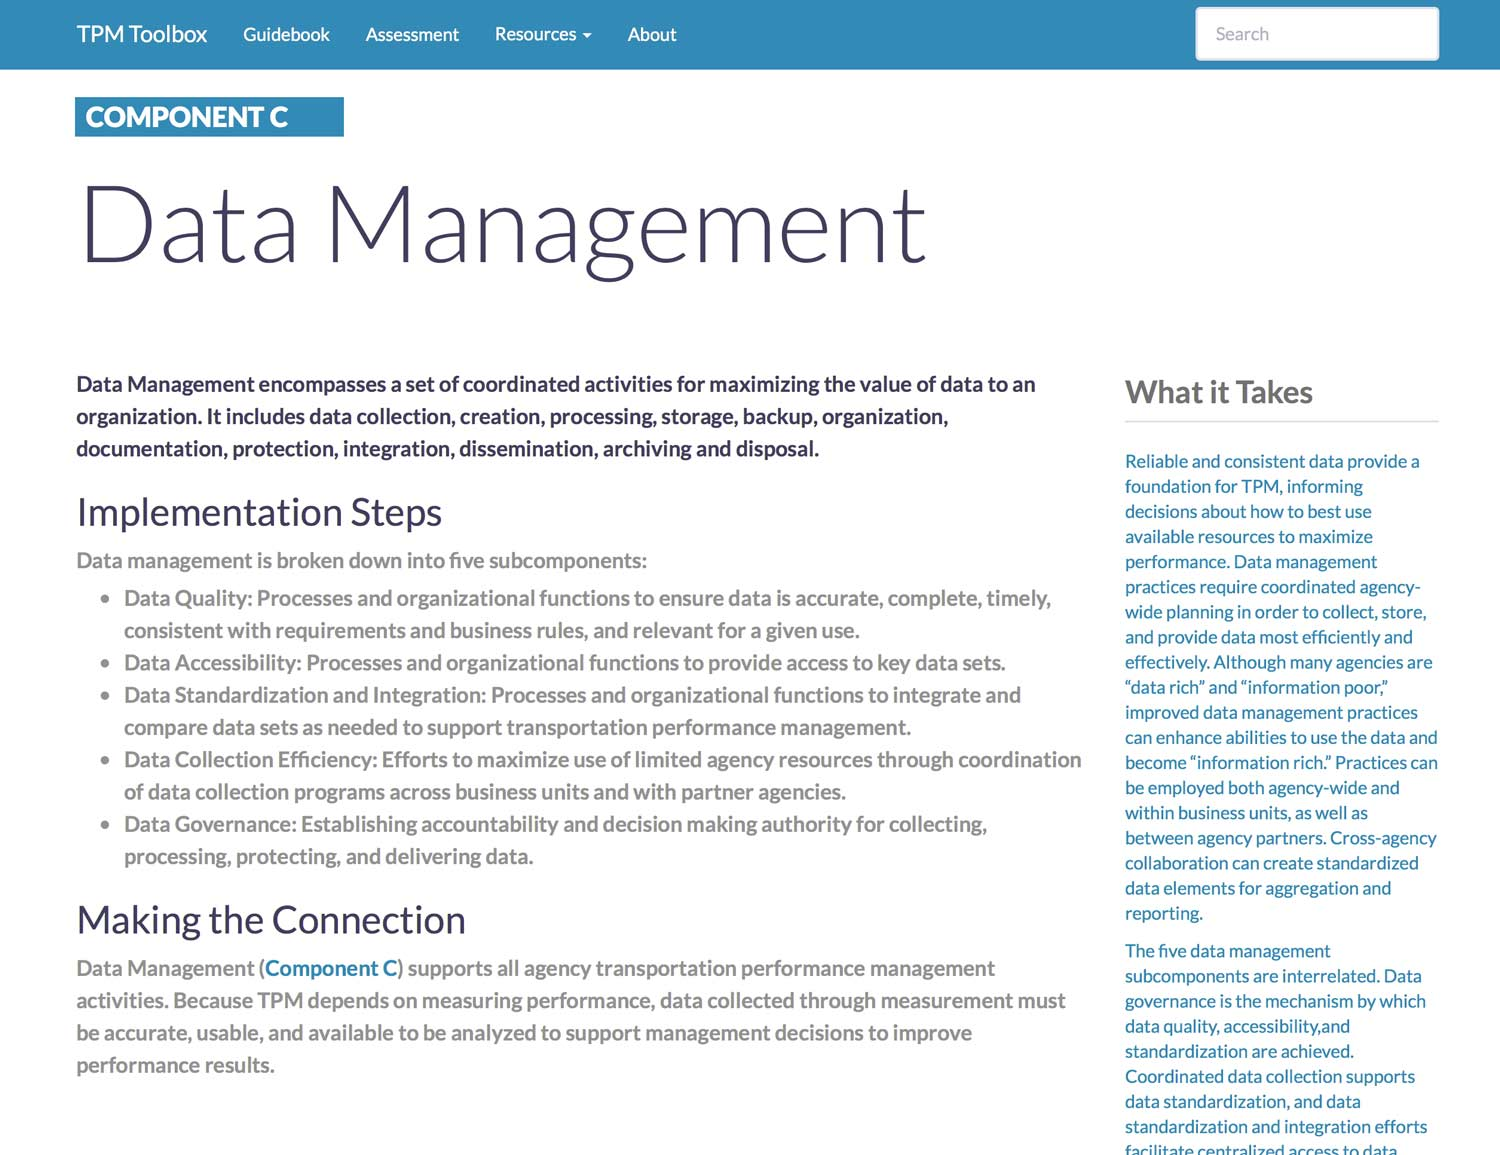 Thumbnail image of Component C Summary webpage. Data Management encompasses a set of coordinated activities for maximizing the value of data to an organization.